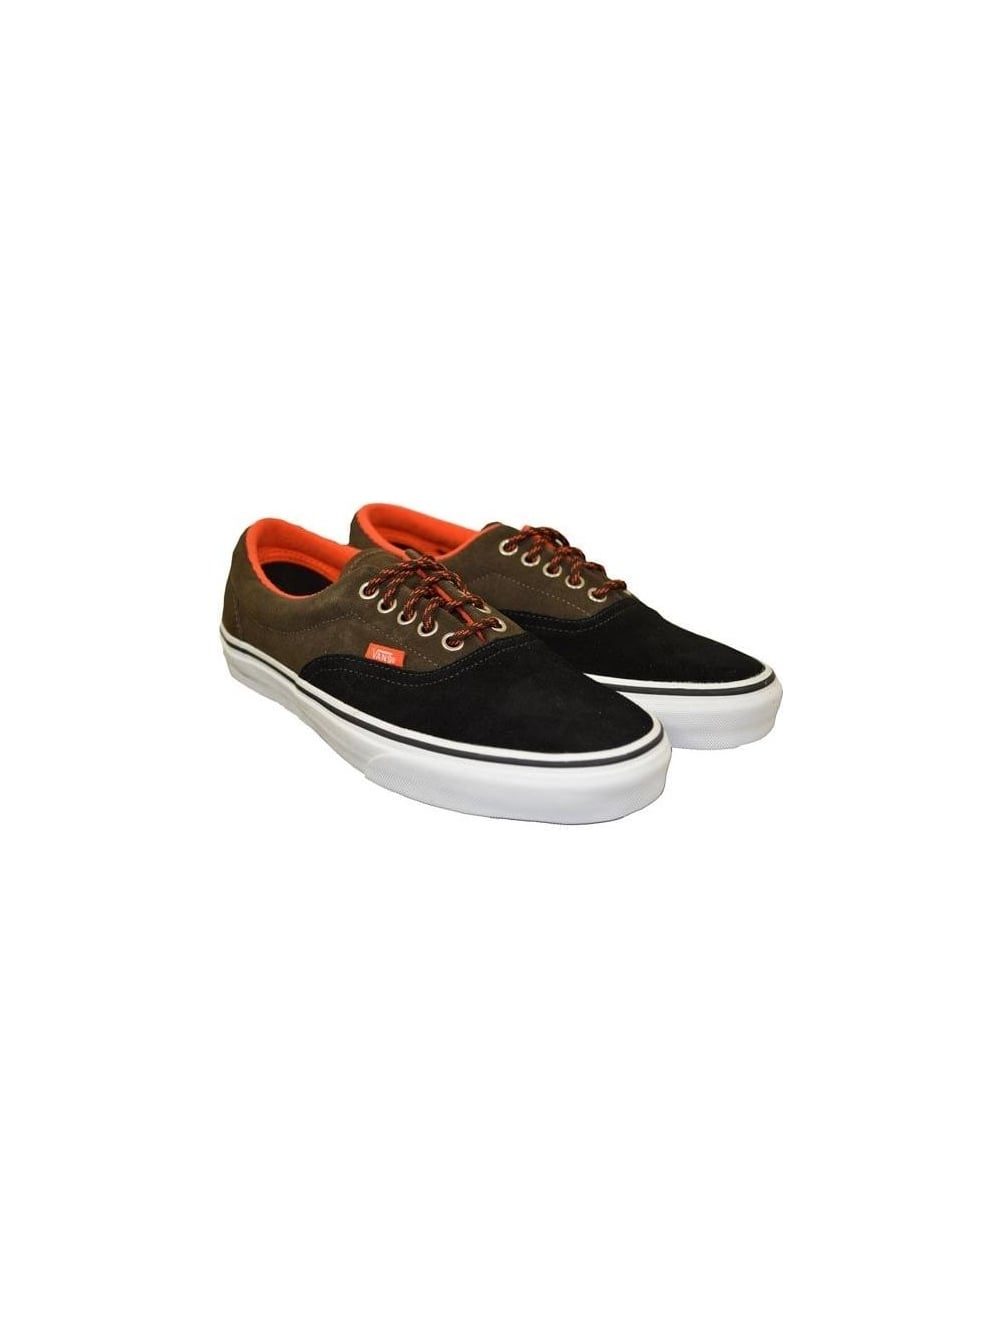 b481b7d04c4 Vans Era Suede in Black Brown - Northern Threads